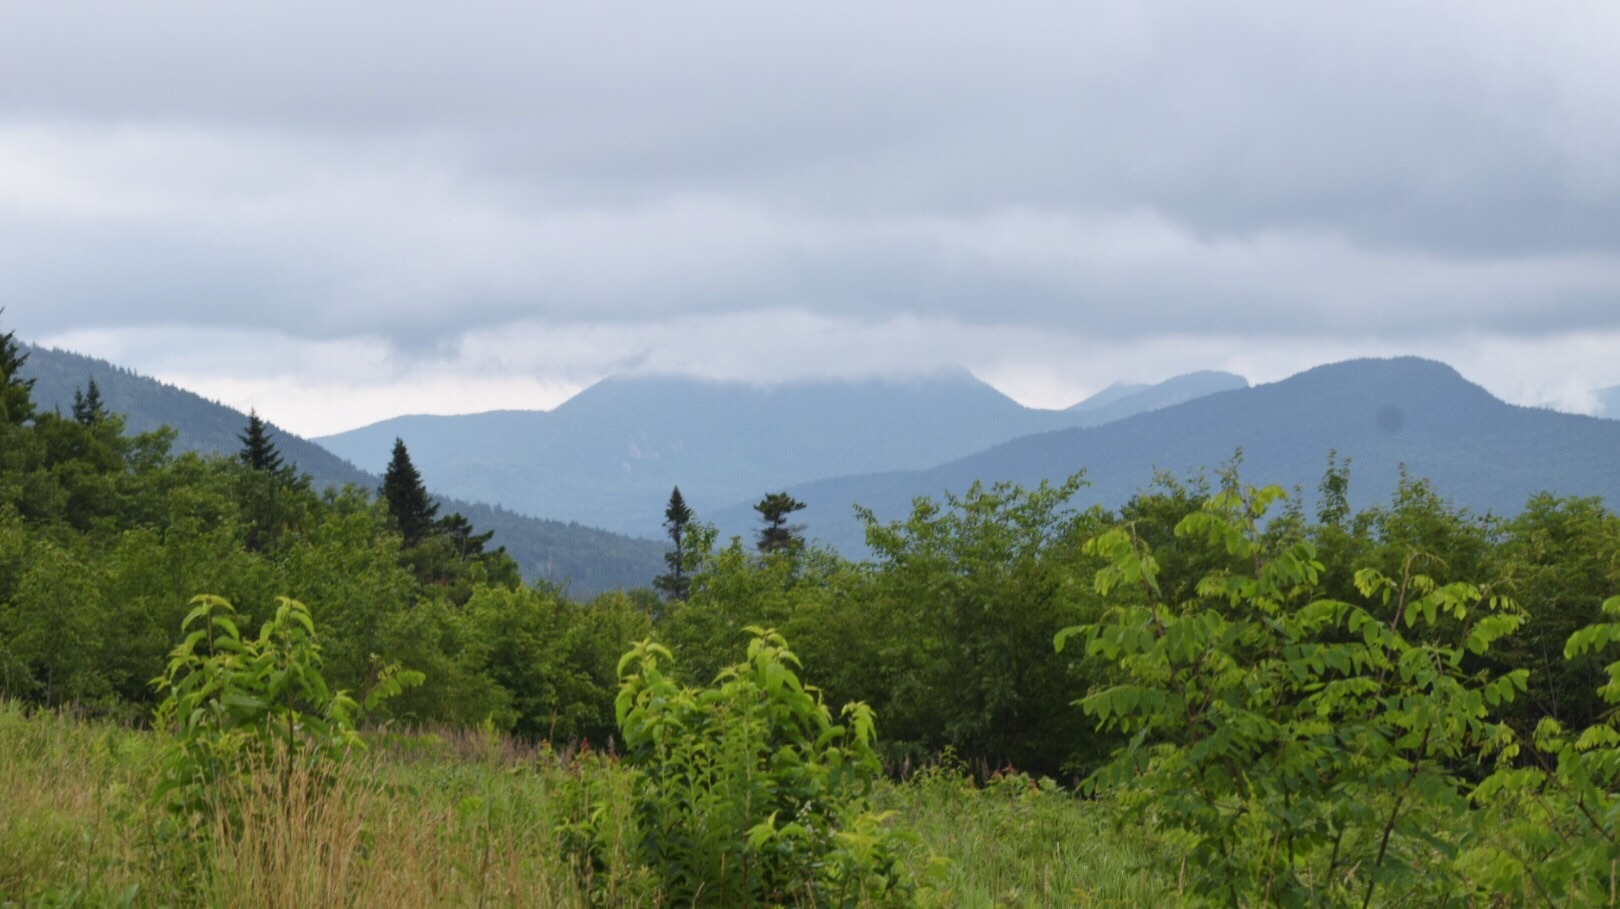 The White Mountains in New Hampshire on a rainy day.